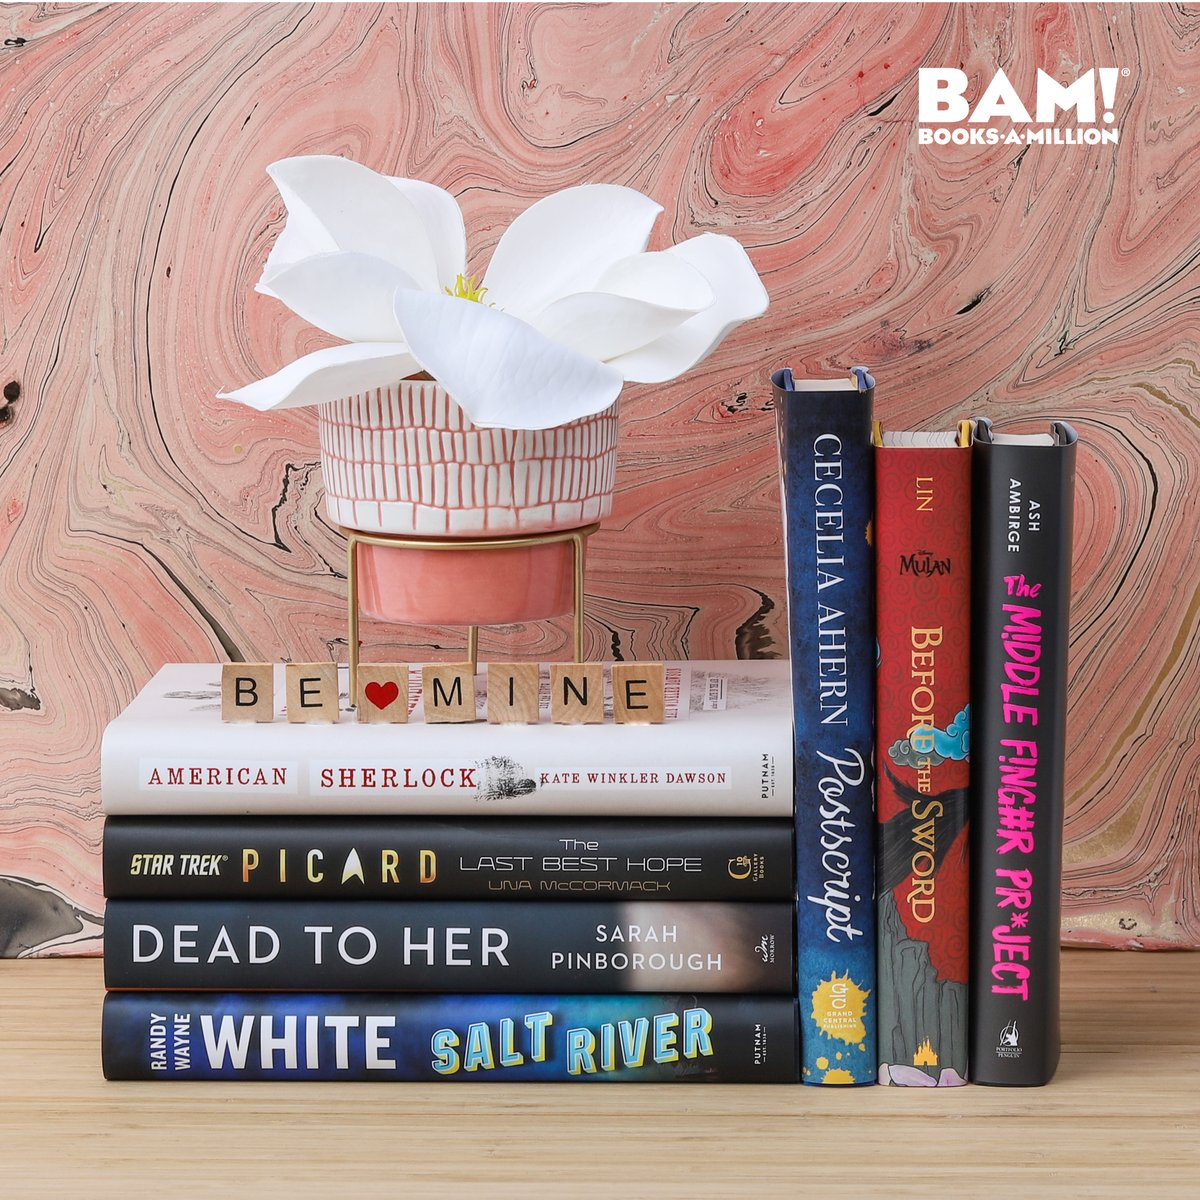 We ❤️ New Release Tuesday! What are you reading first? bit.ly/2S05hdX